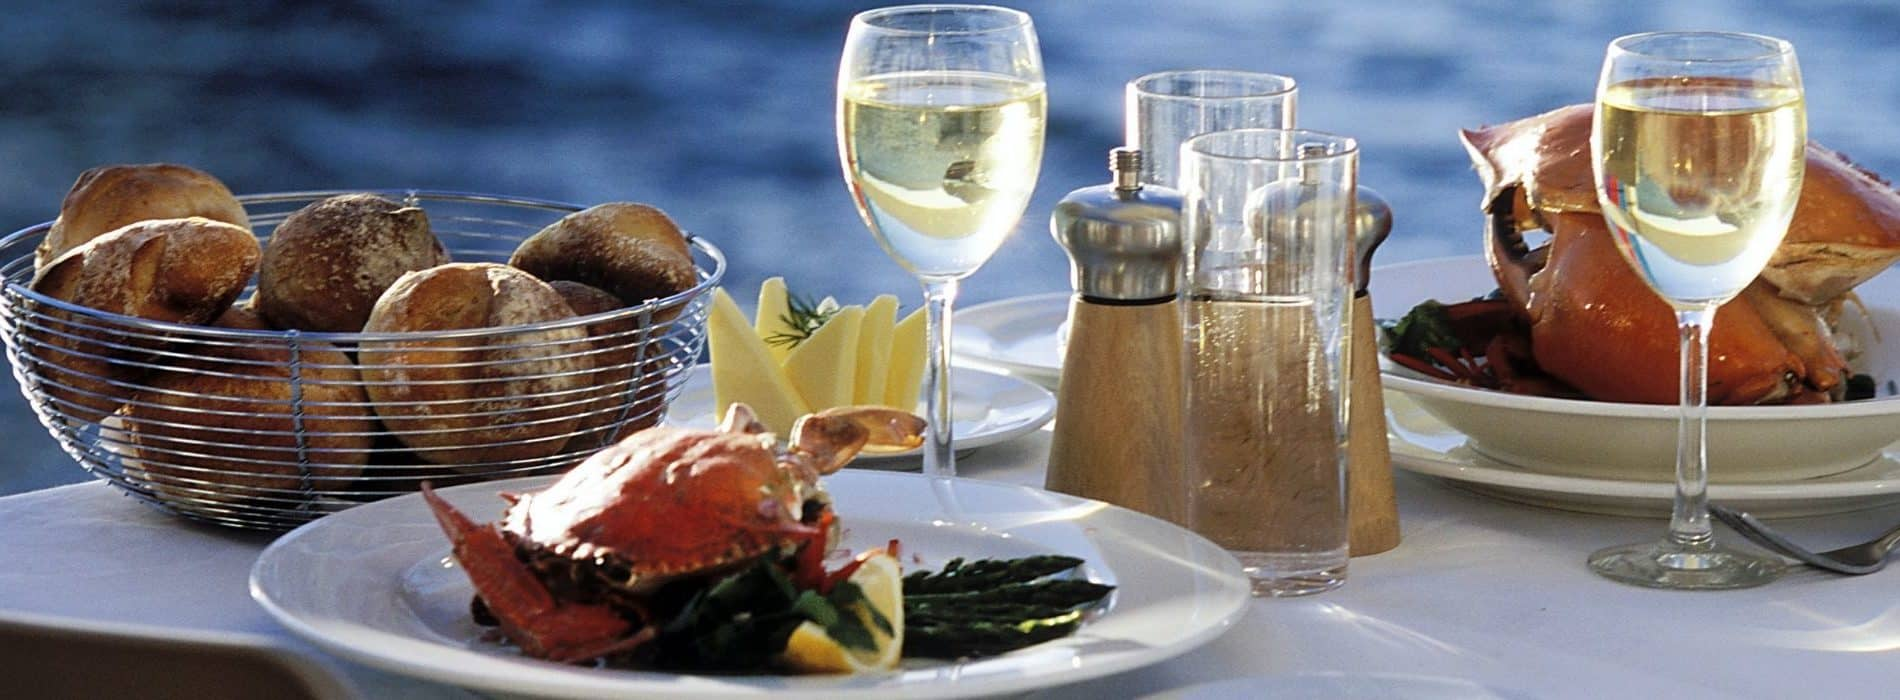 Dining table by the water set with seafood and white wine